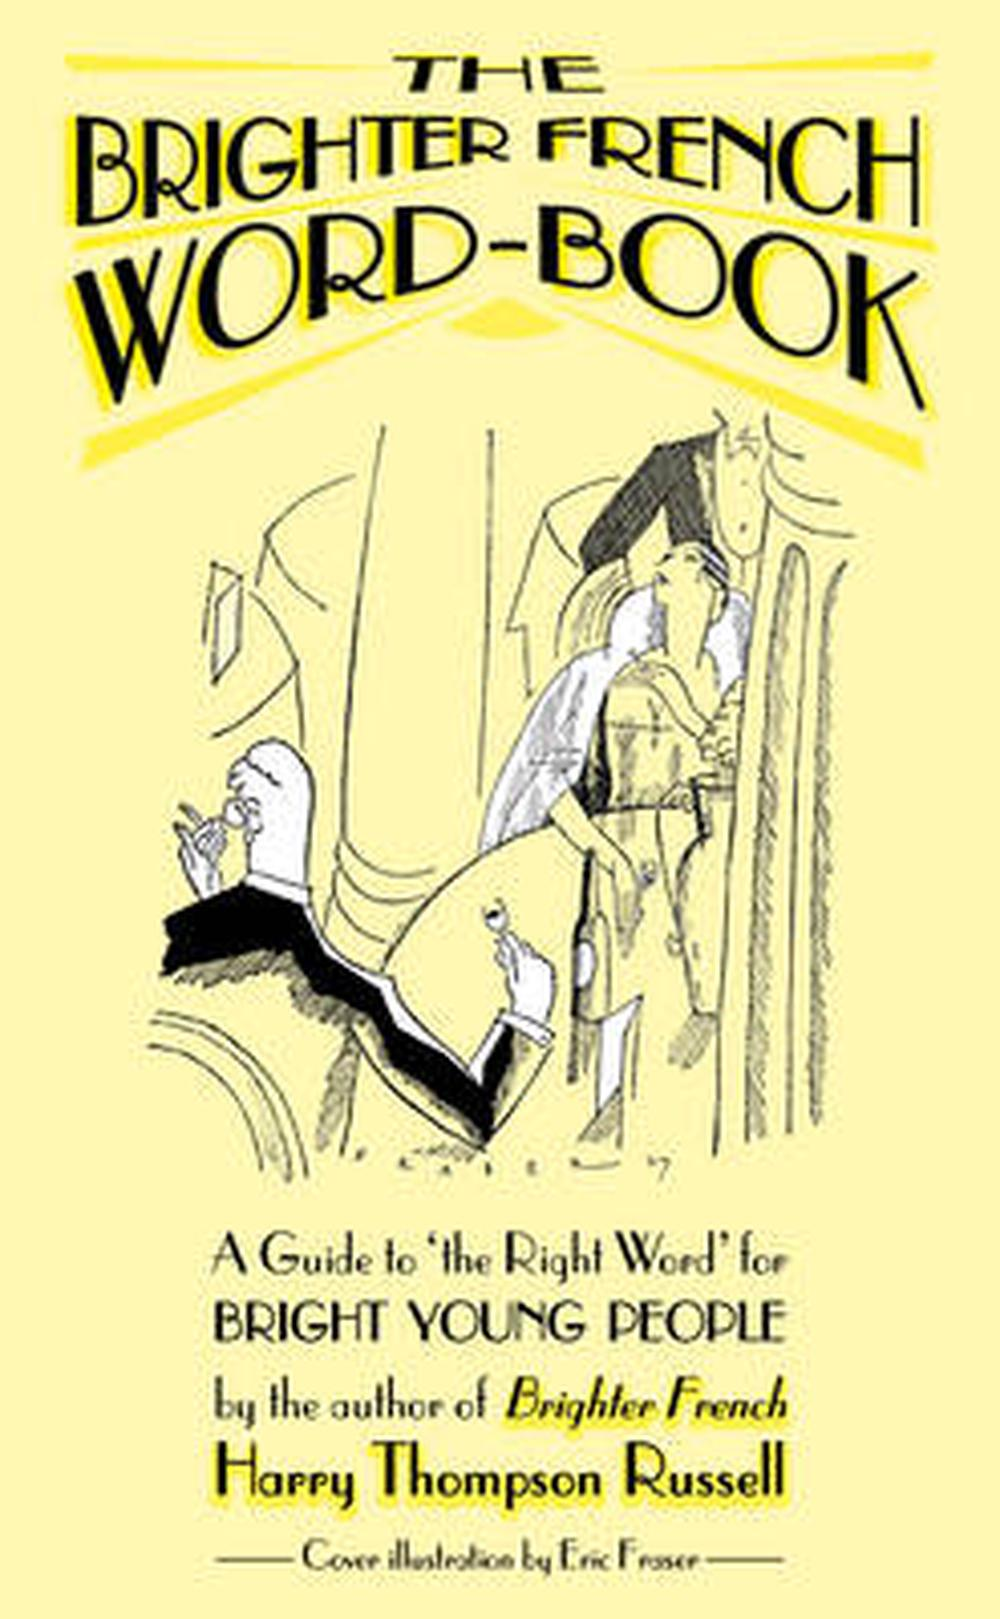 Brighter-French-Word-book-by-Harry-Thompson-Russell-Paperback-Book-Free-Shipping